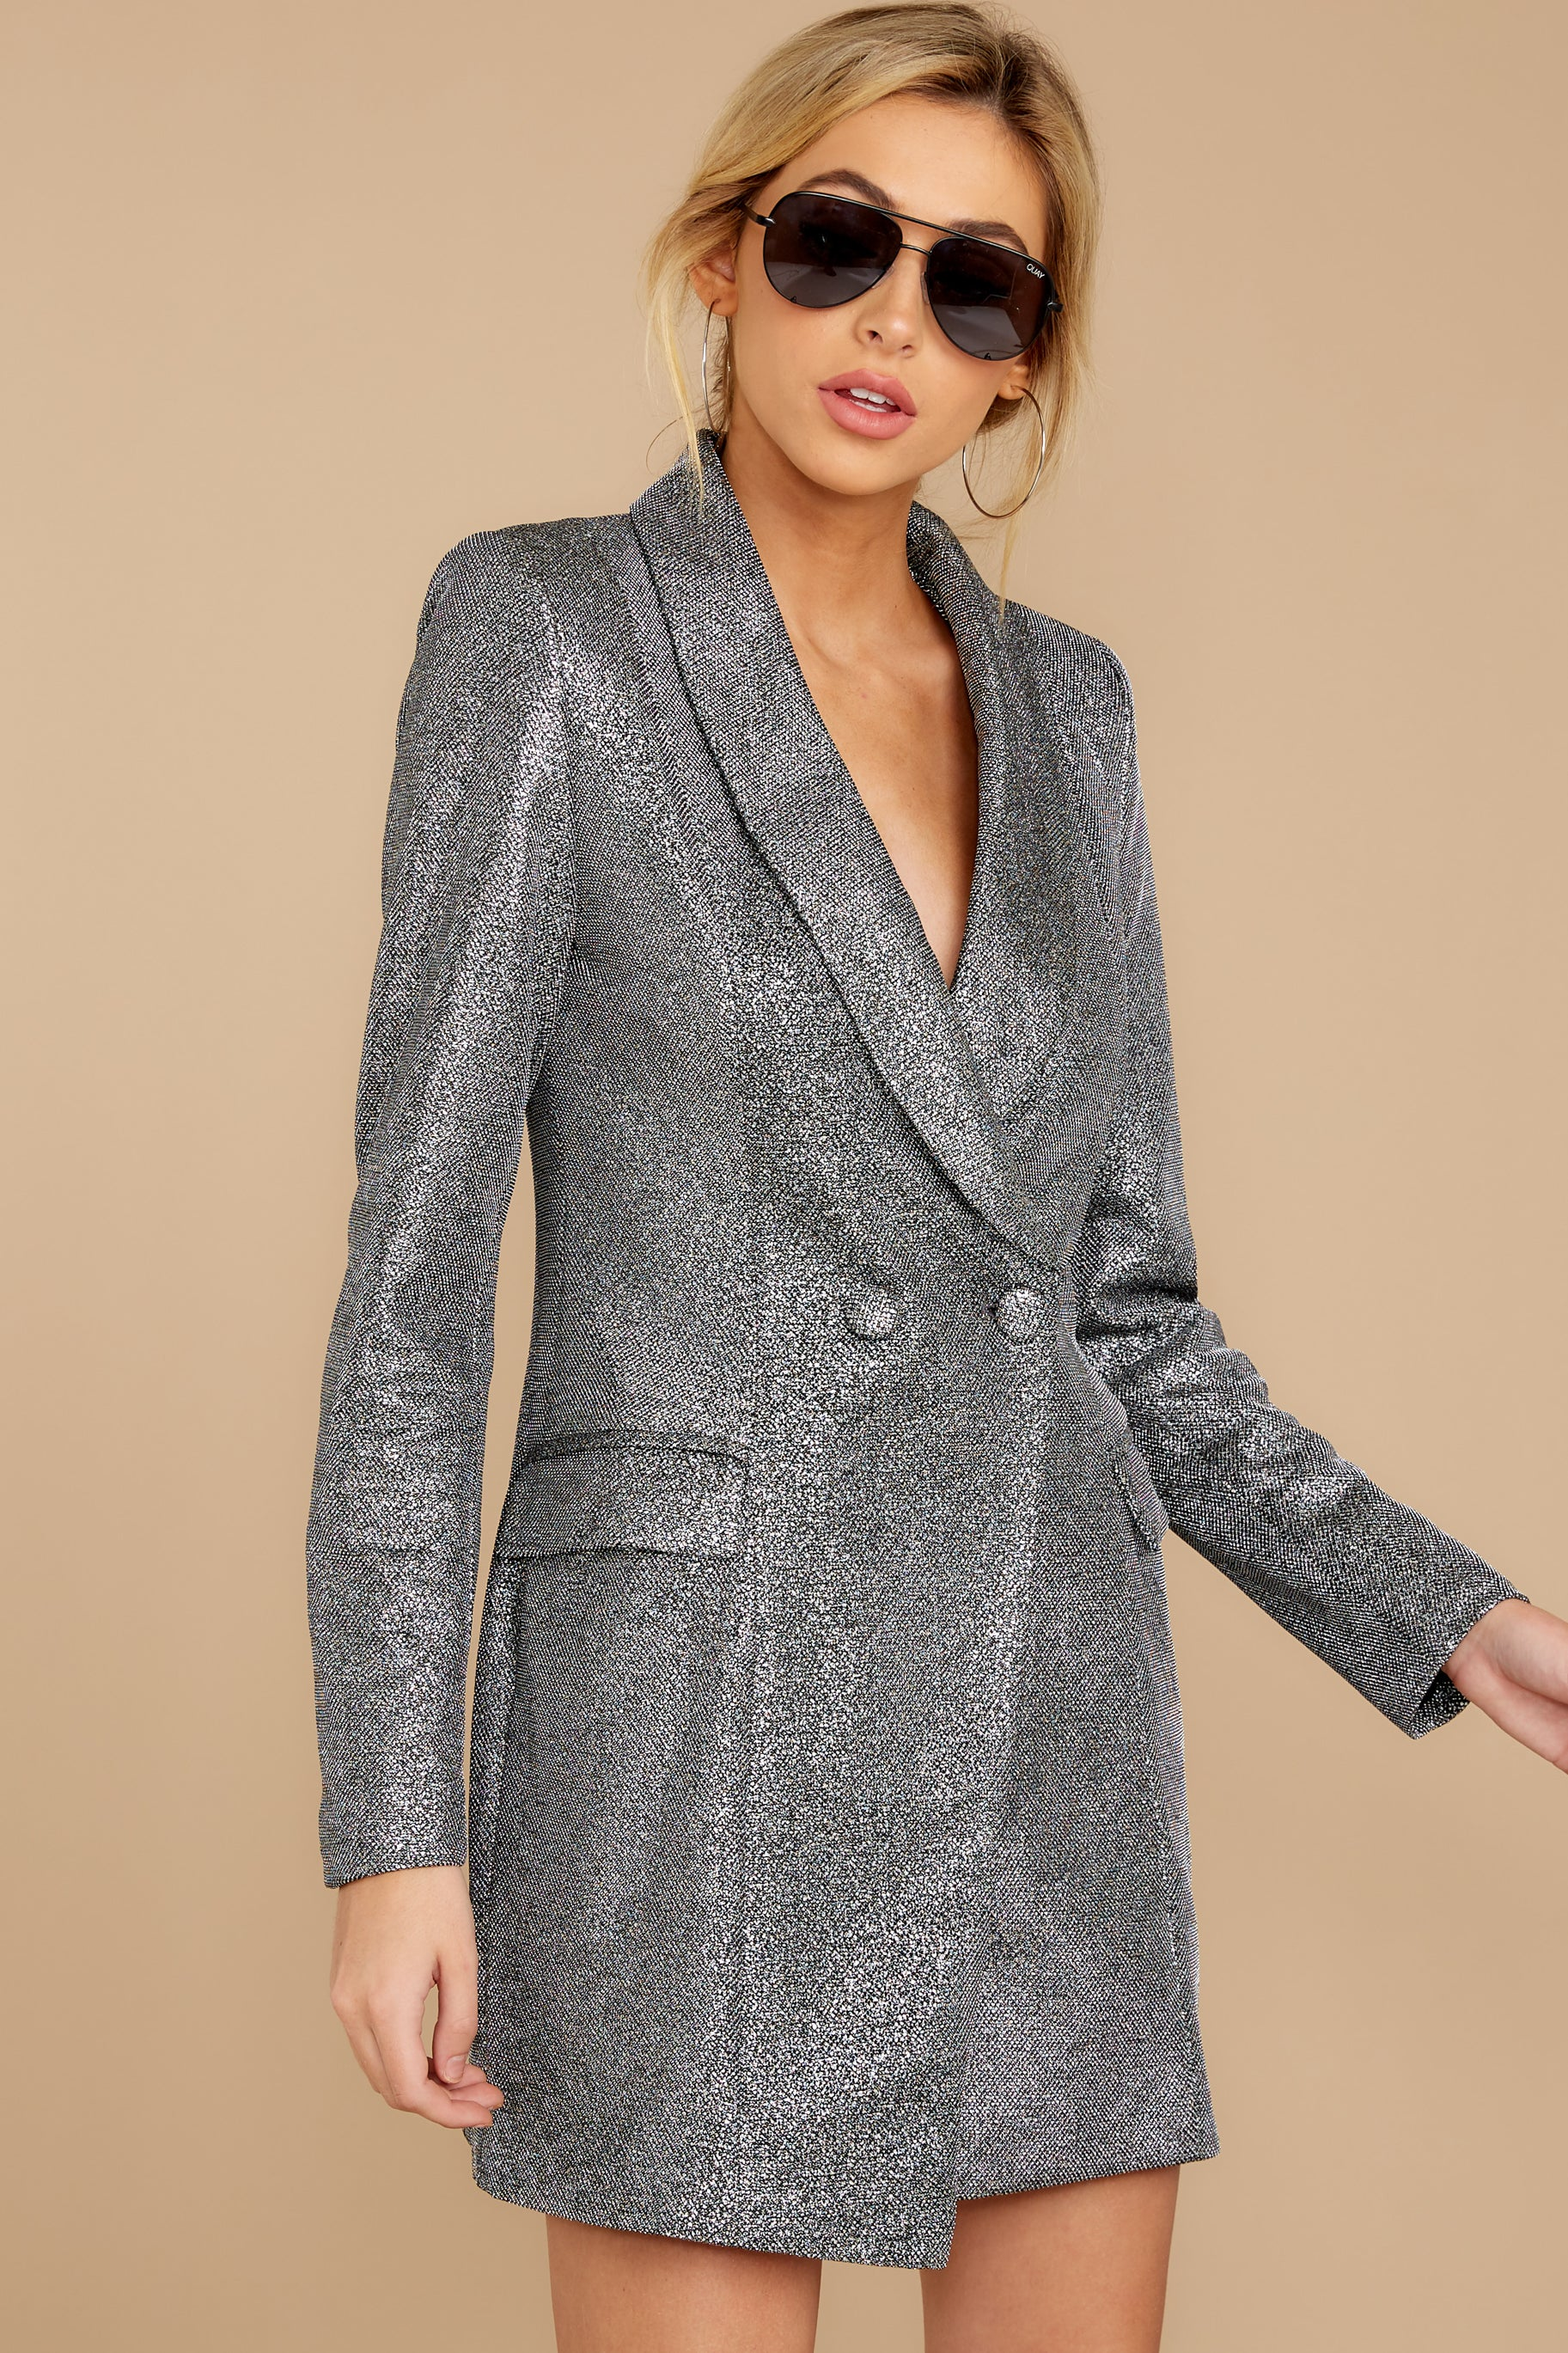 7 Reign Supreme Silver Blazer Dress at reddressboutique.com